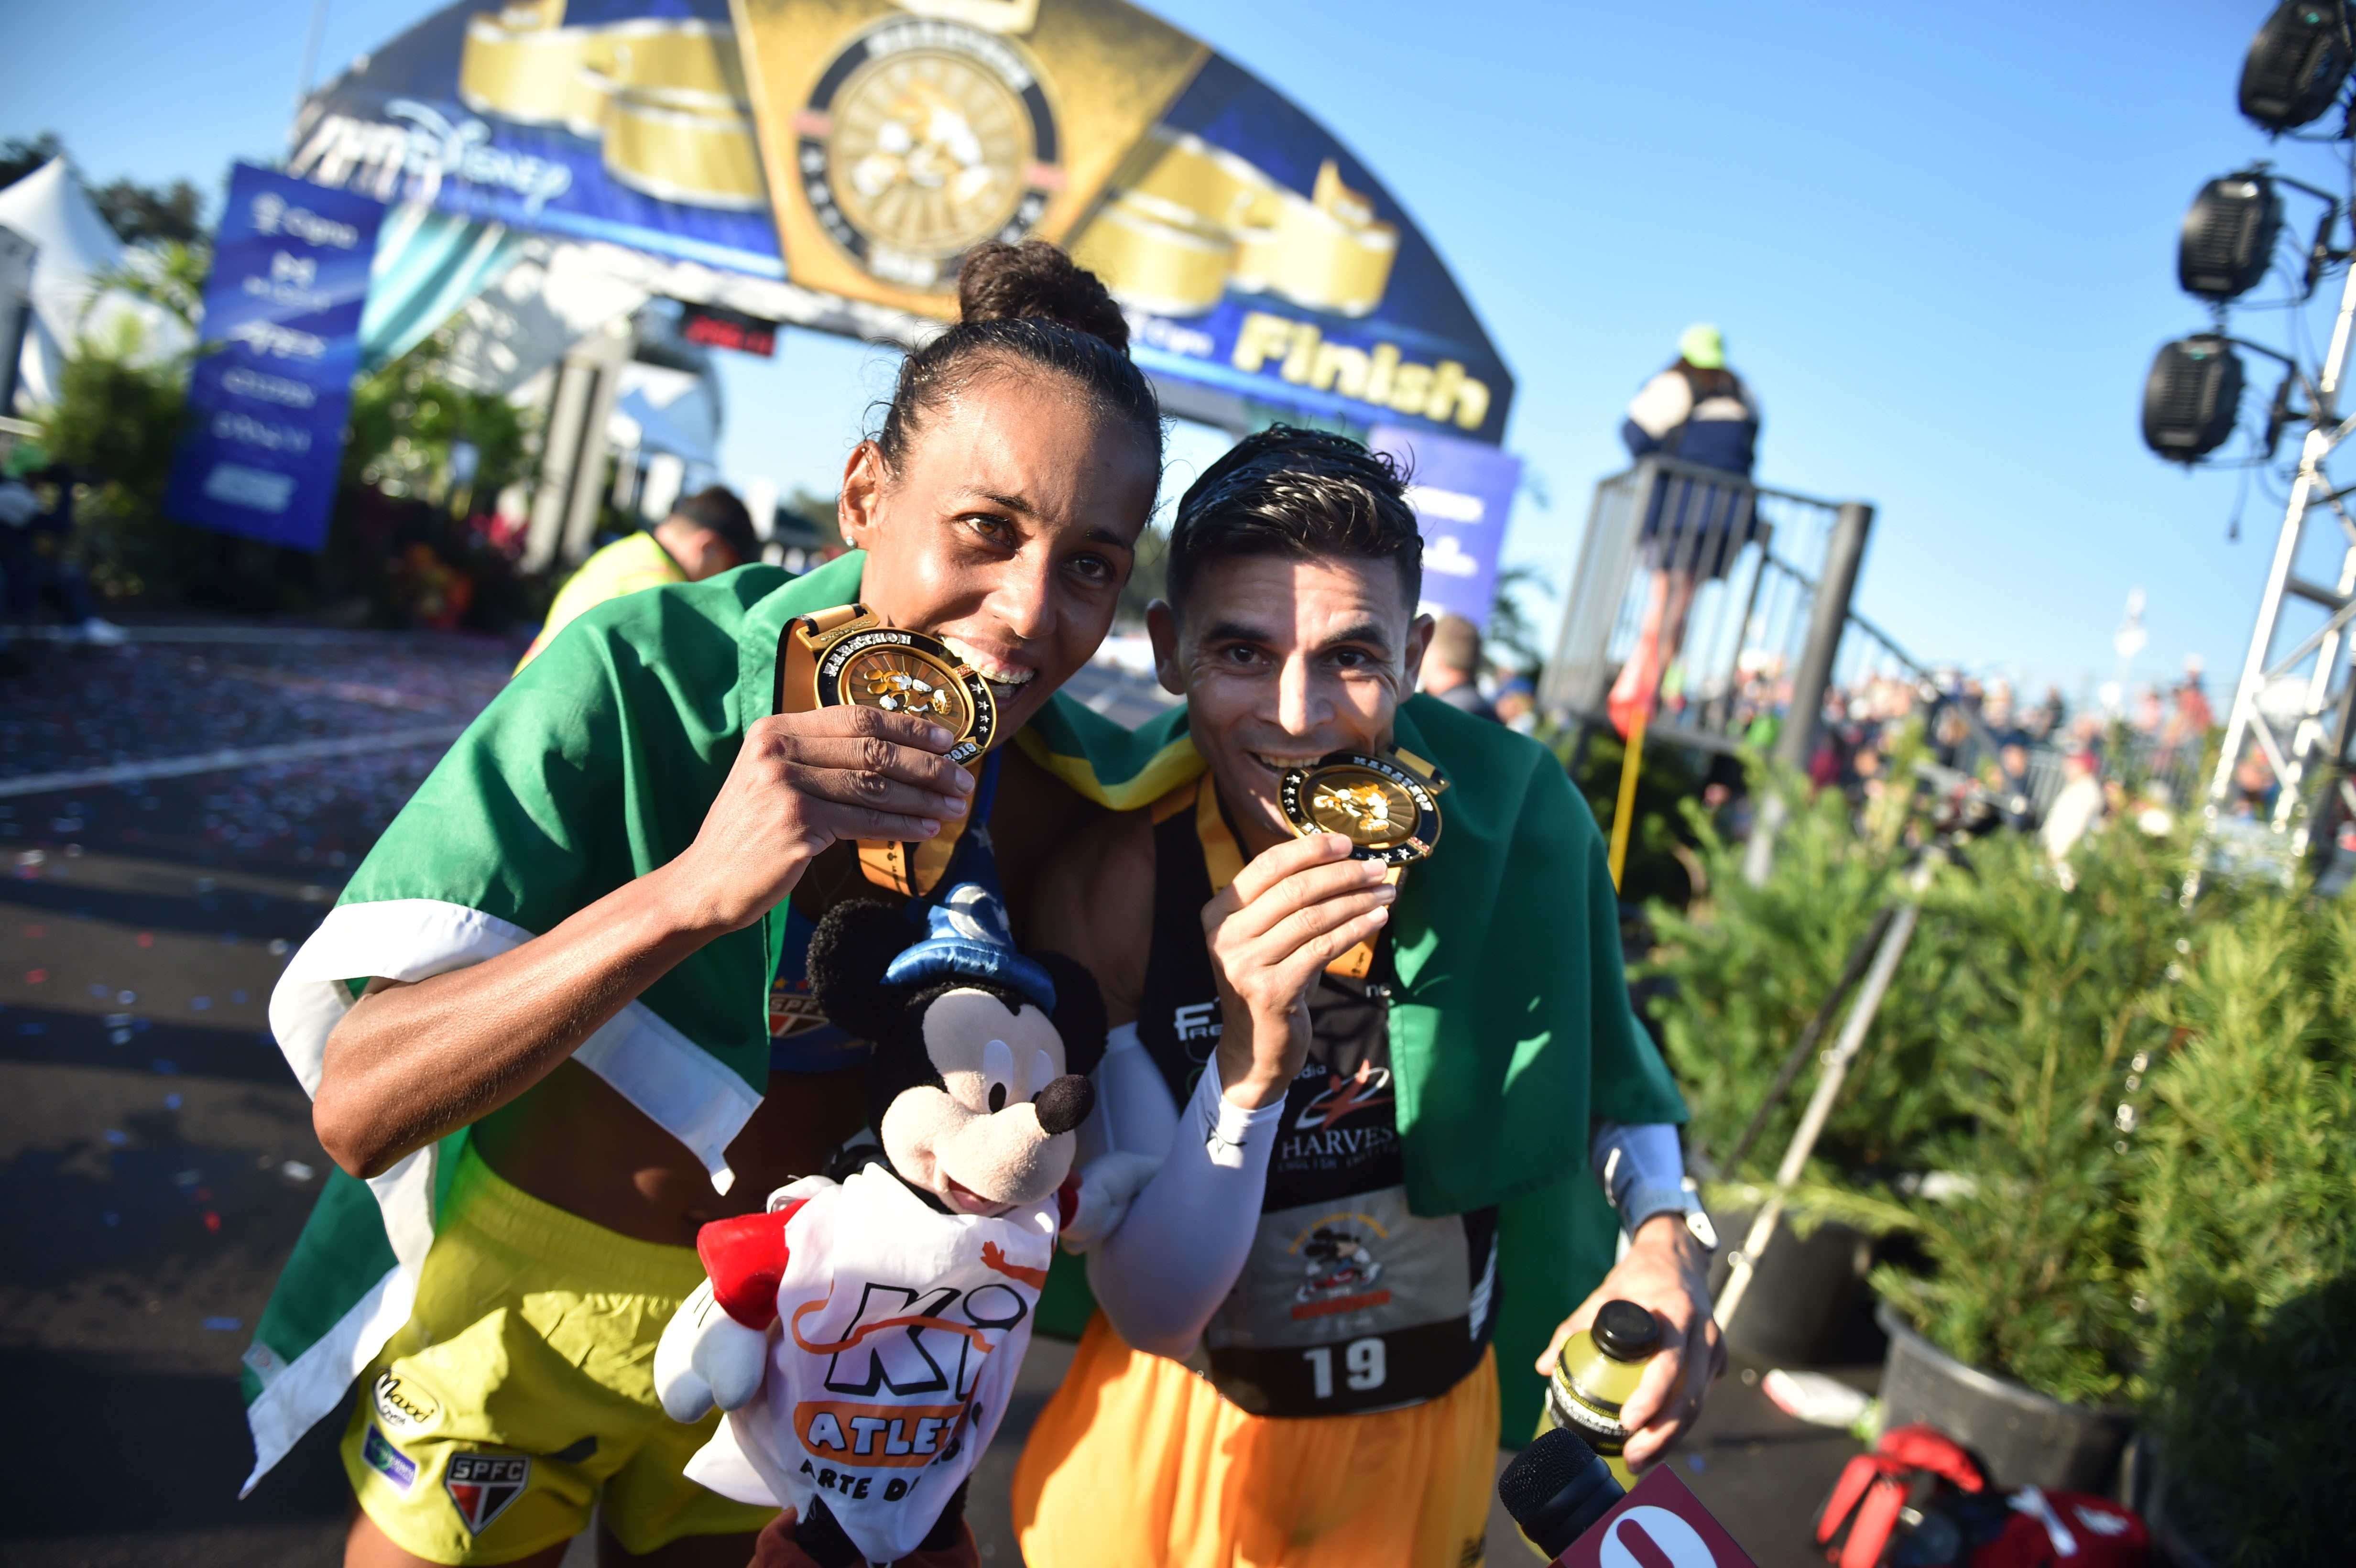 Past Brazilians Champions Dominate Walt Disney World Marathon Again